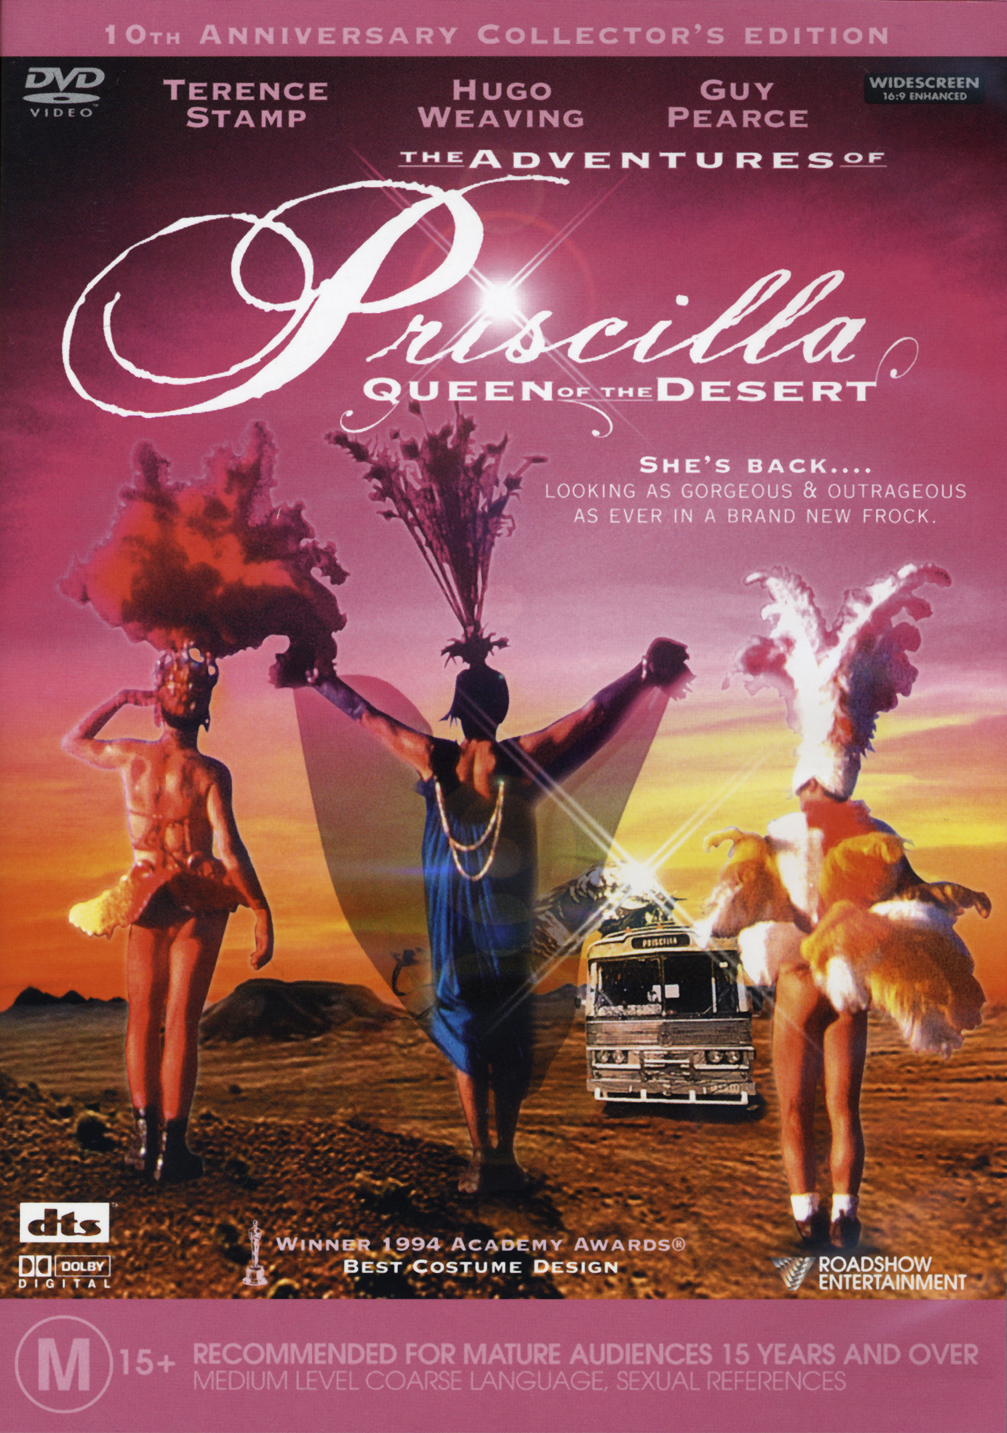 adventures of priscilla queen of the The adventures of priscilla, queen of the desert (1994):two drag performers and a transgender woman travel across the desert to perform their unique style of cabaret.